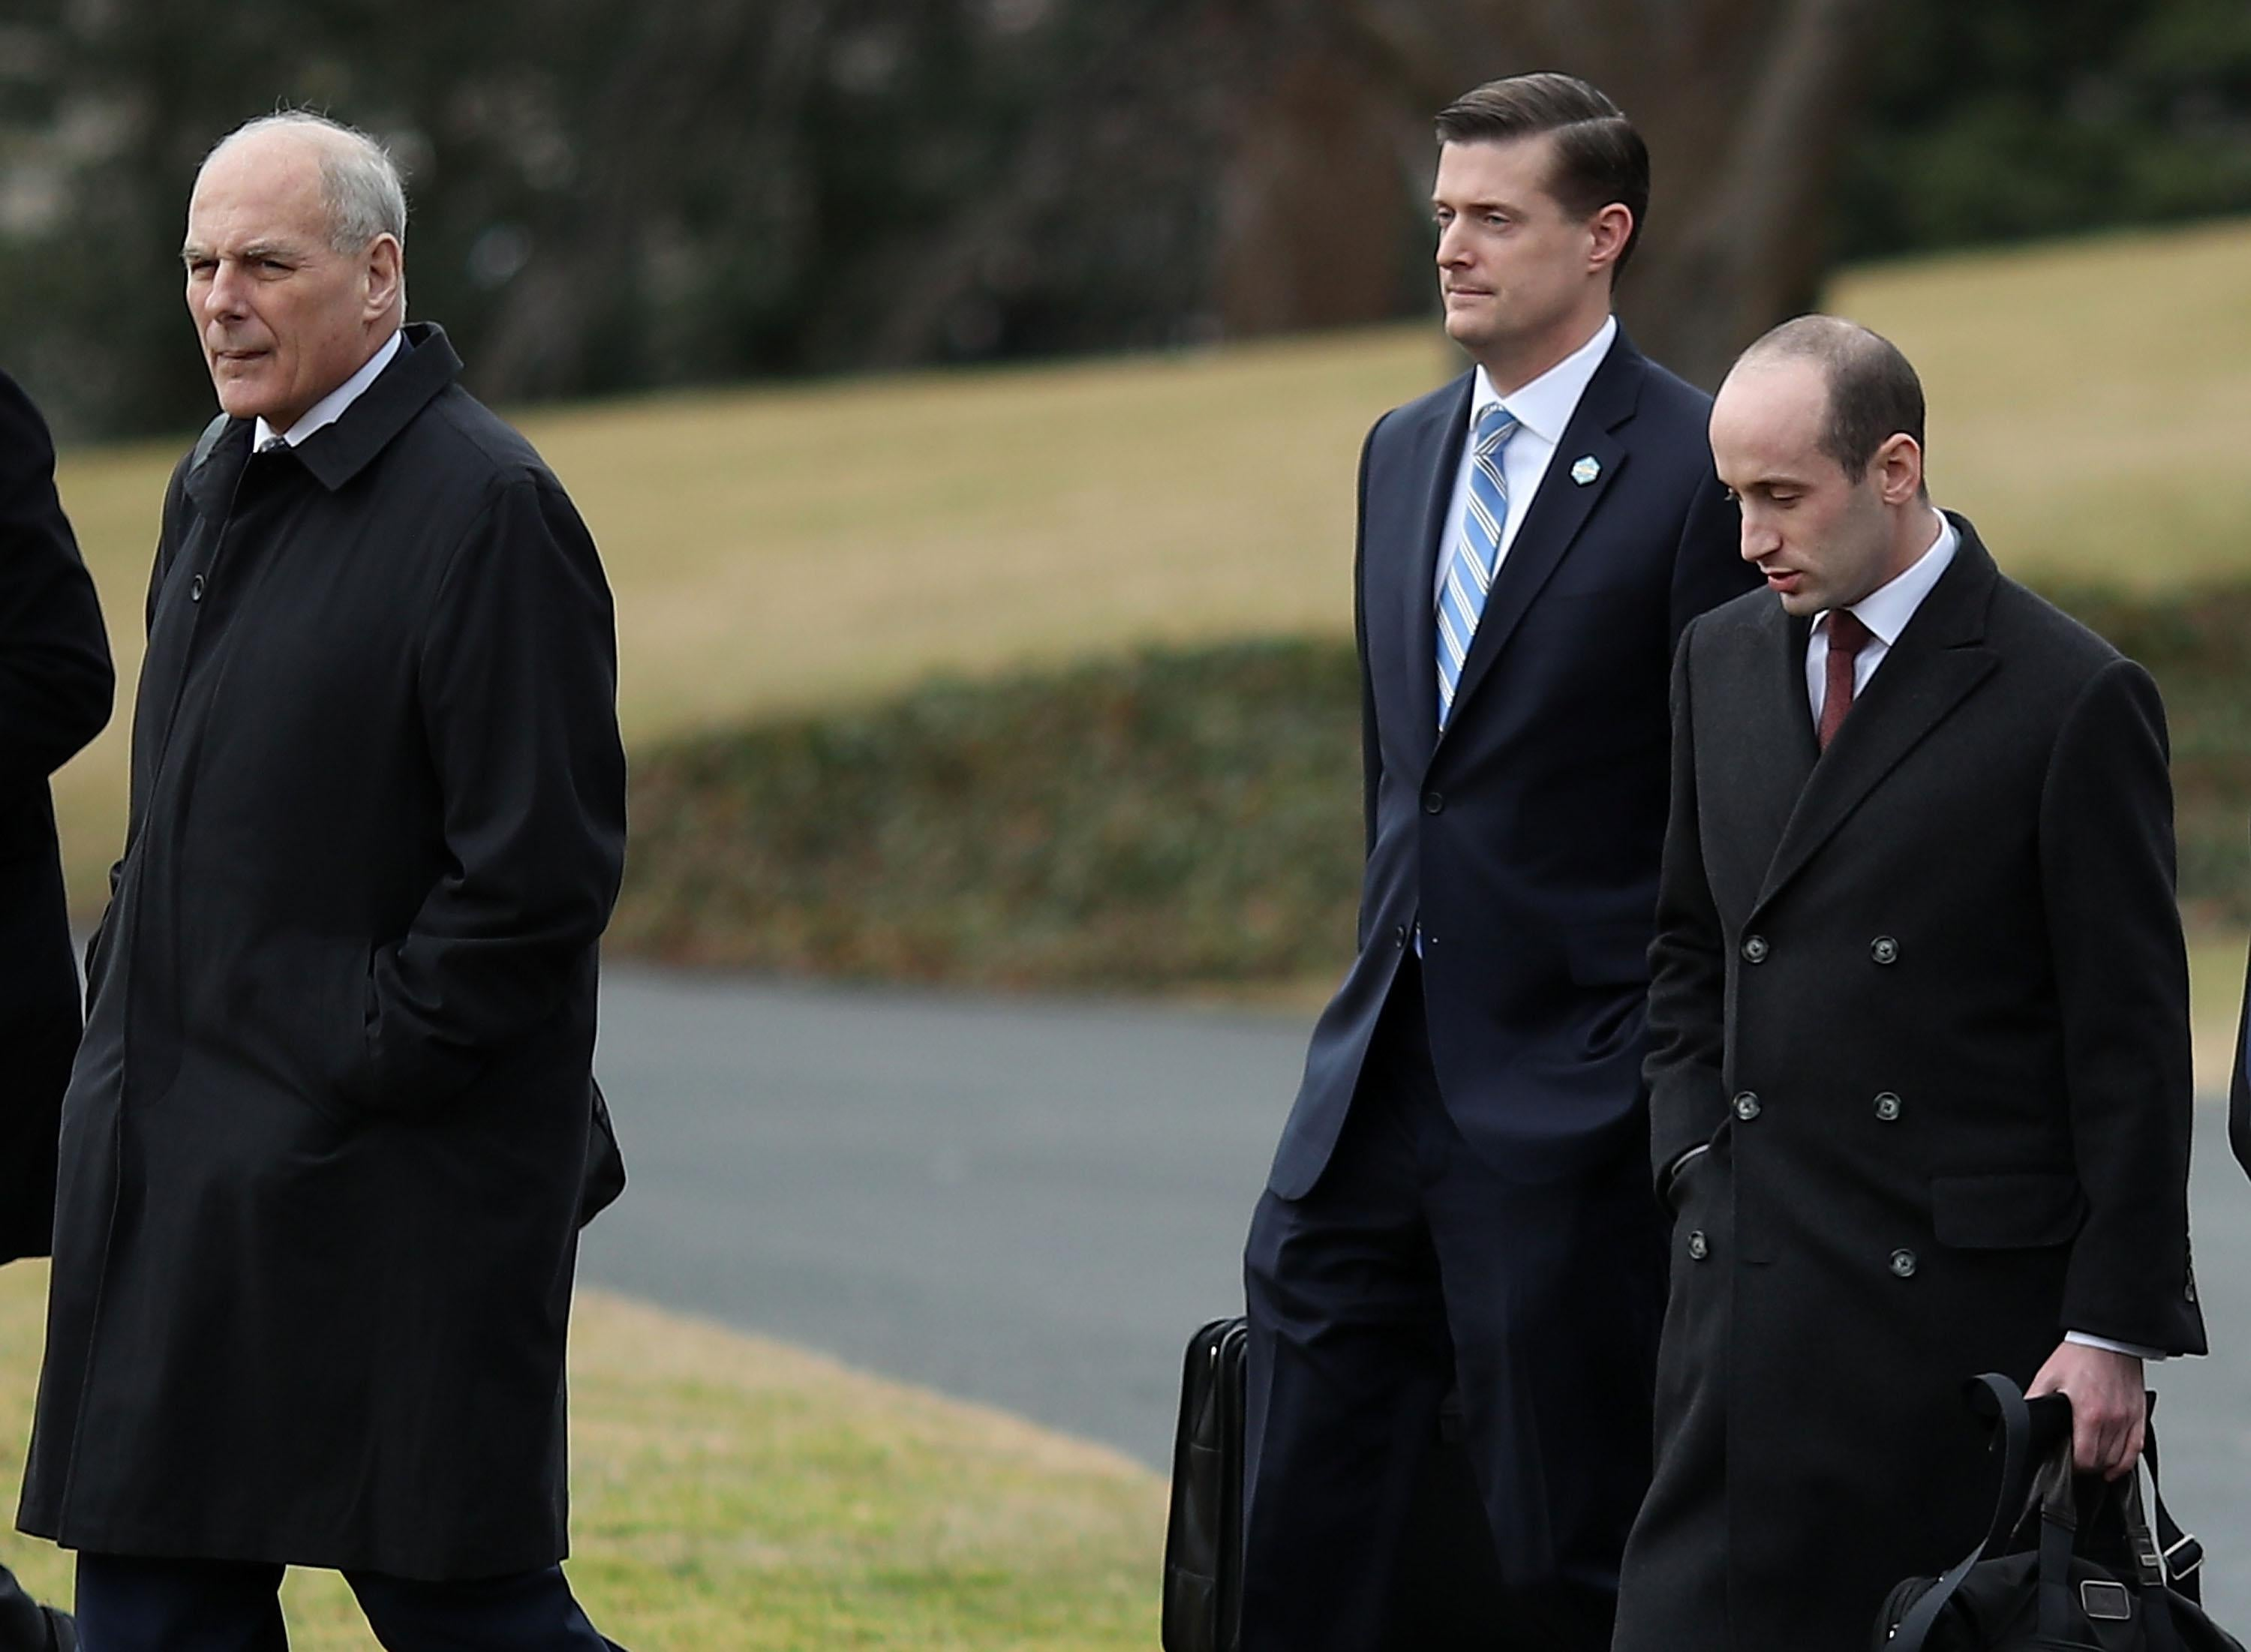 WASHINGTON, DC - FEBRUARY 01: White House chief of staff John Kelly, (L), walks with staff secretary Rob Porter, (C), and White House senior advisor Stephen Miller, before boarding Marine One to depart from the White House with President Donald Trump, on February 1, 2018 in Washington, DC. (Photo by Mark Wilson/Getty Images)